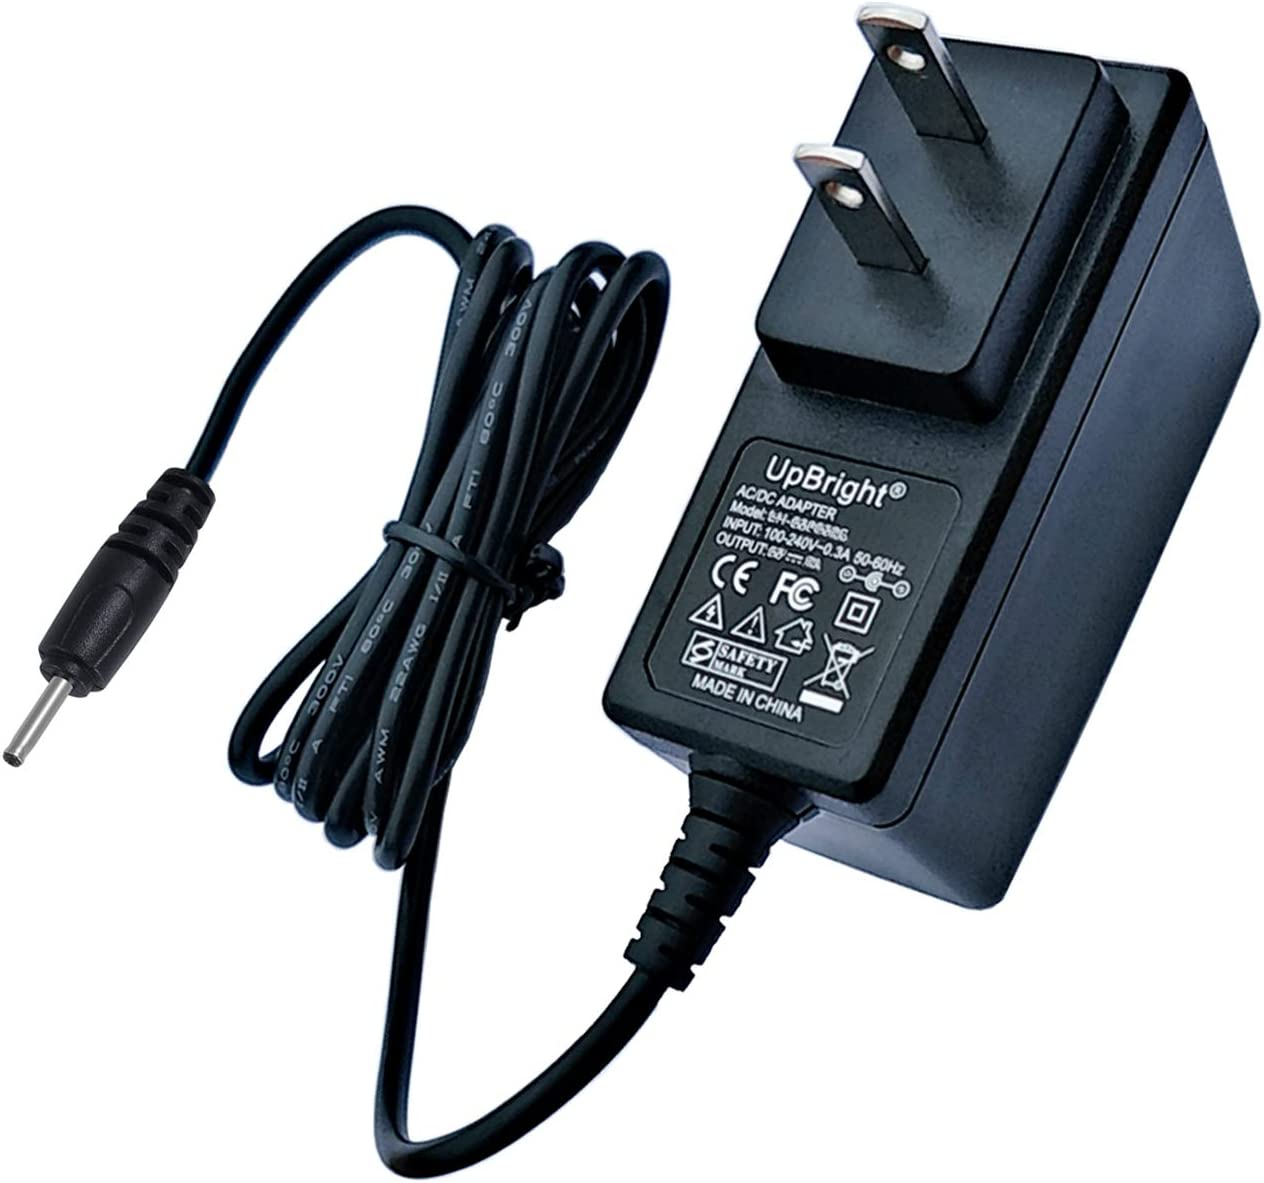 UpBright New Global 5V AC/DC Adapter Compatible with Flypower PS12H050K2000UD Tablet 5VDC 2A 5.0V 2000mA Switching Power Supply Cord Cable PS Battery Charger Mains PSU (w/Barrel Round Plug Tip)